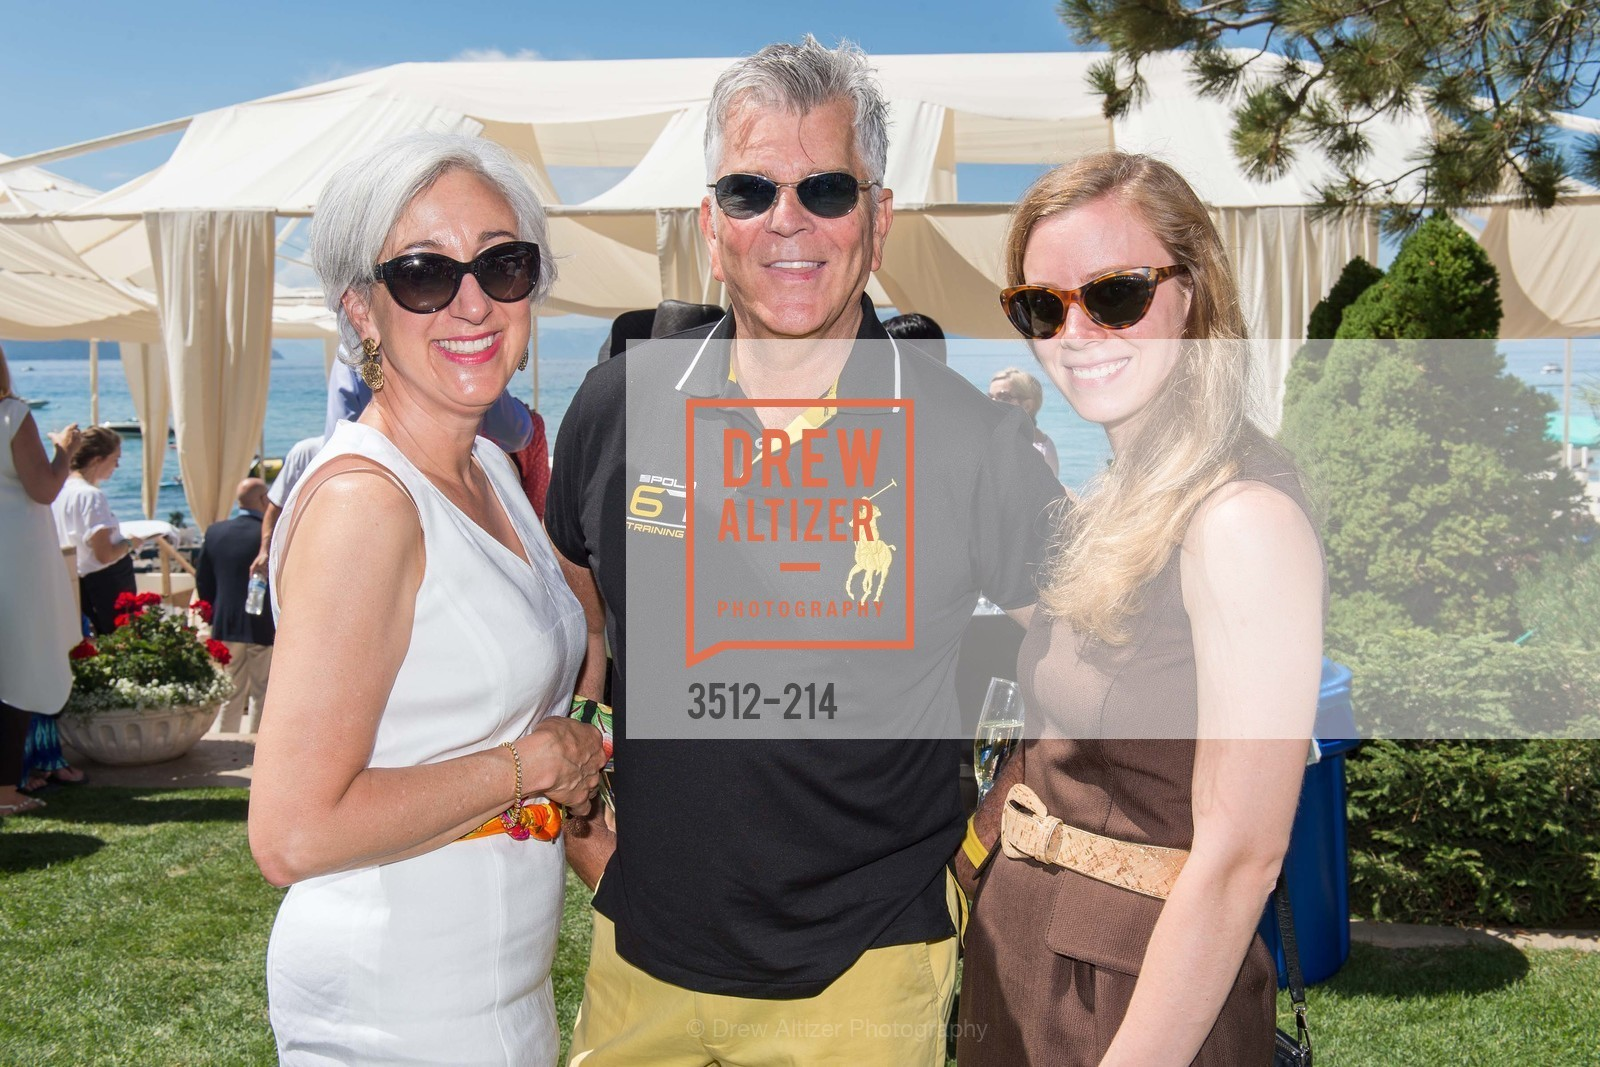 Rina Symczak, Michael Simons, Mary Souza, Saks Fifth Avenue and The League to Save Lake Tahoe Present Fashion on the Lake, Private Residence, August 1st, 2015,Drew Altizer, Drew Altizer Photography, full-service agency, private events, San Francisco photographer, photographer california